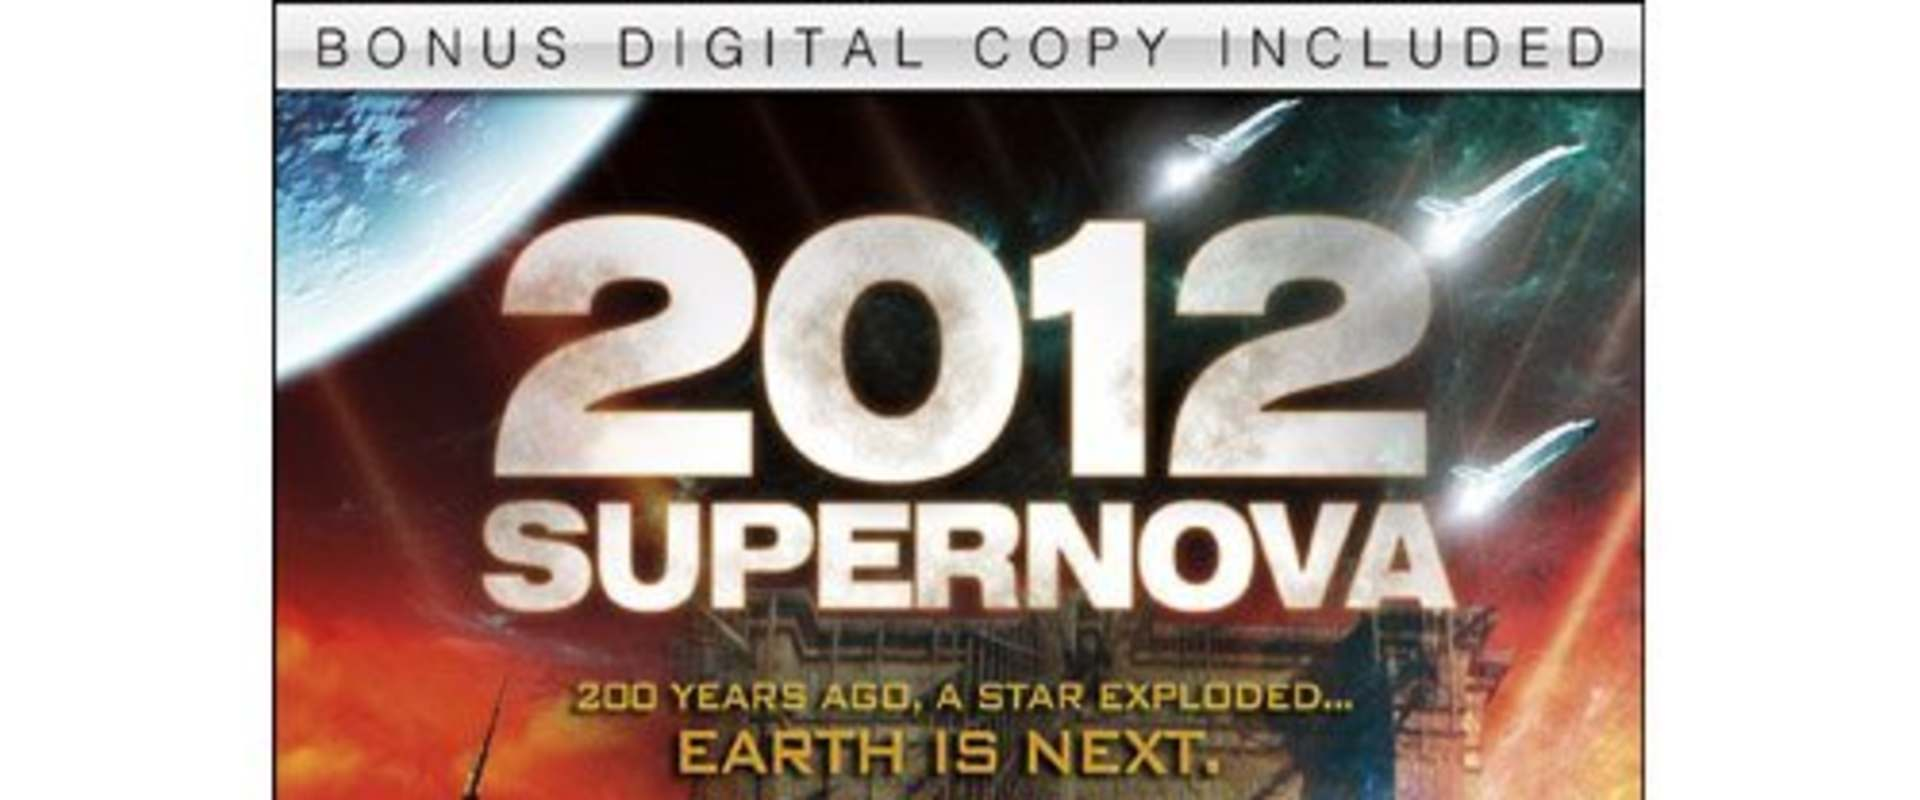 2012: Supernova background 2